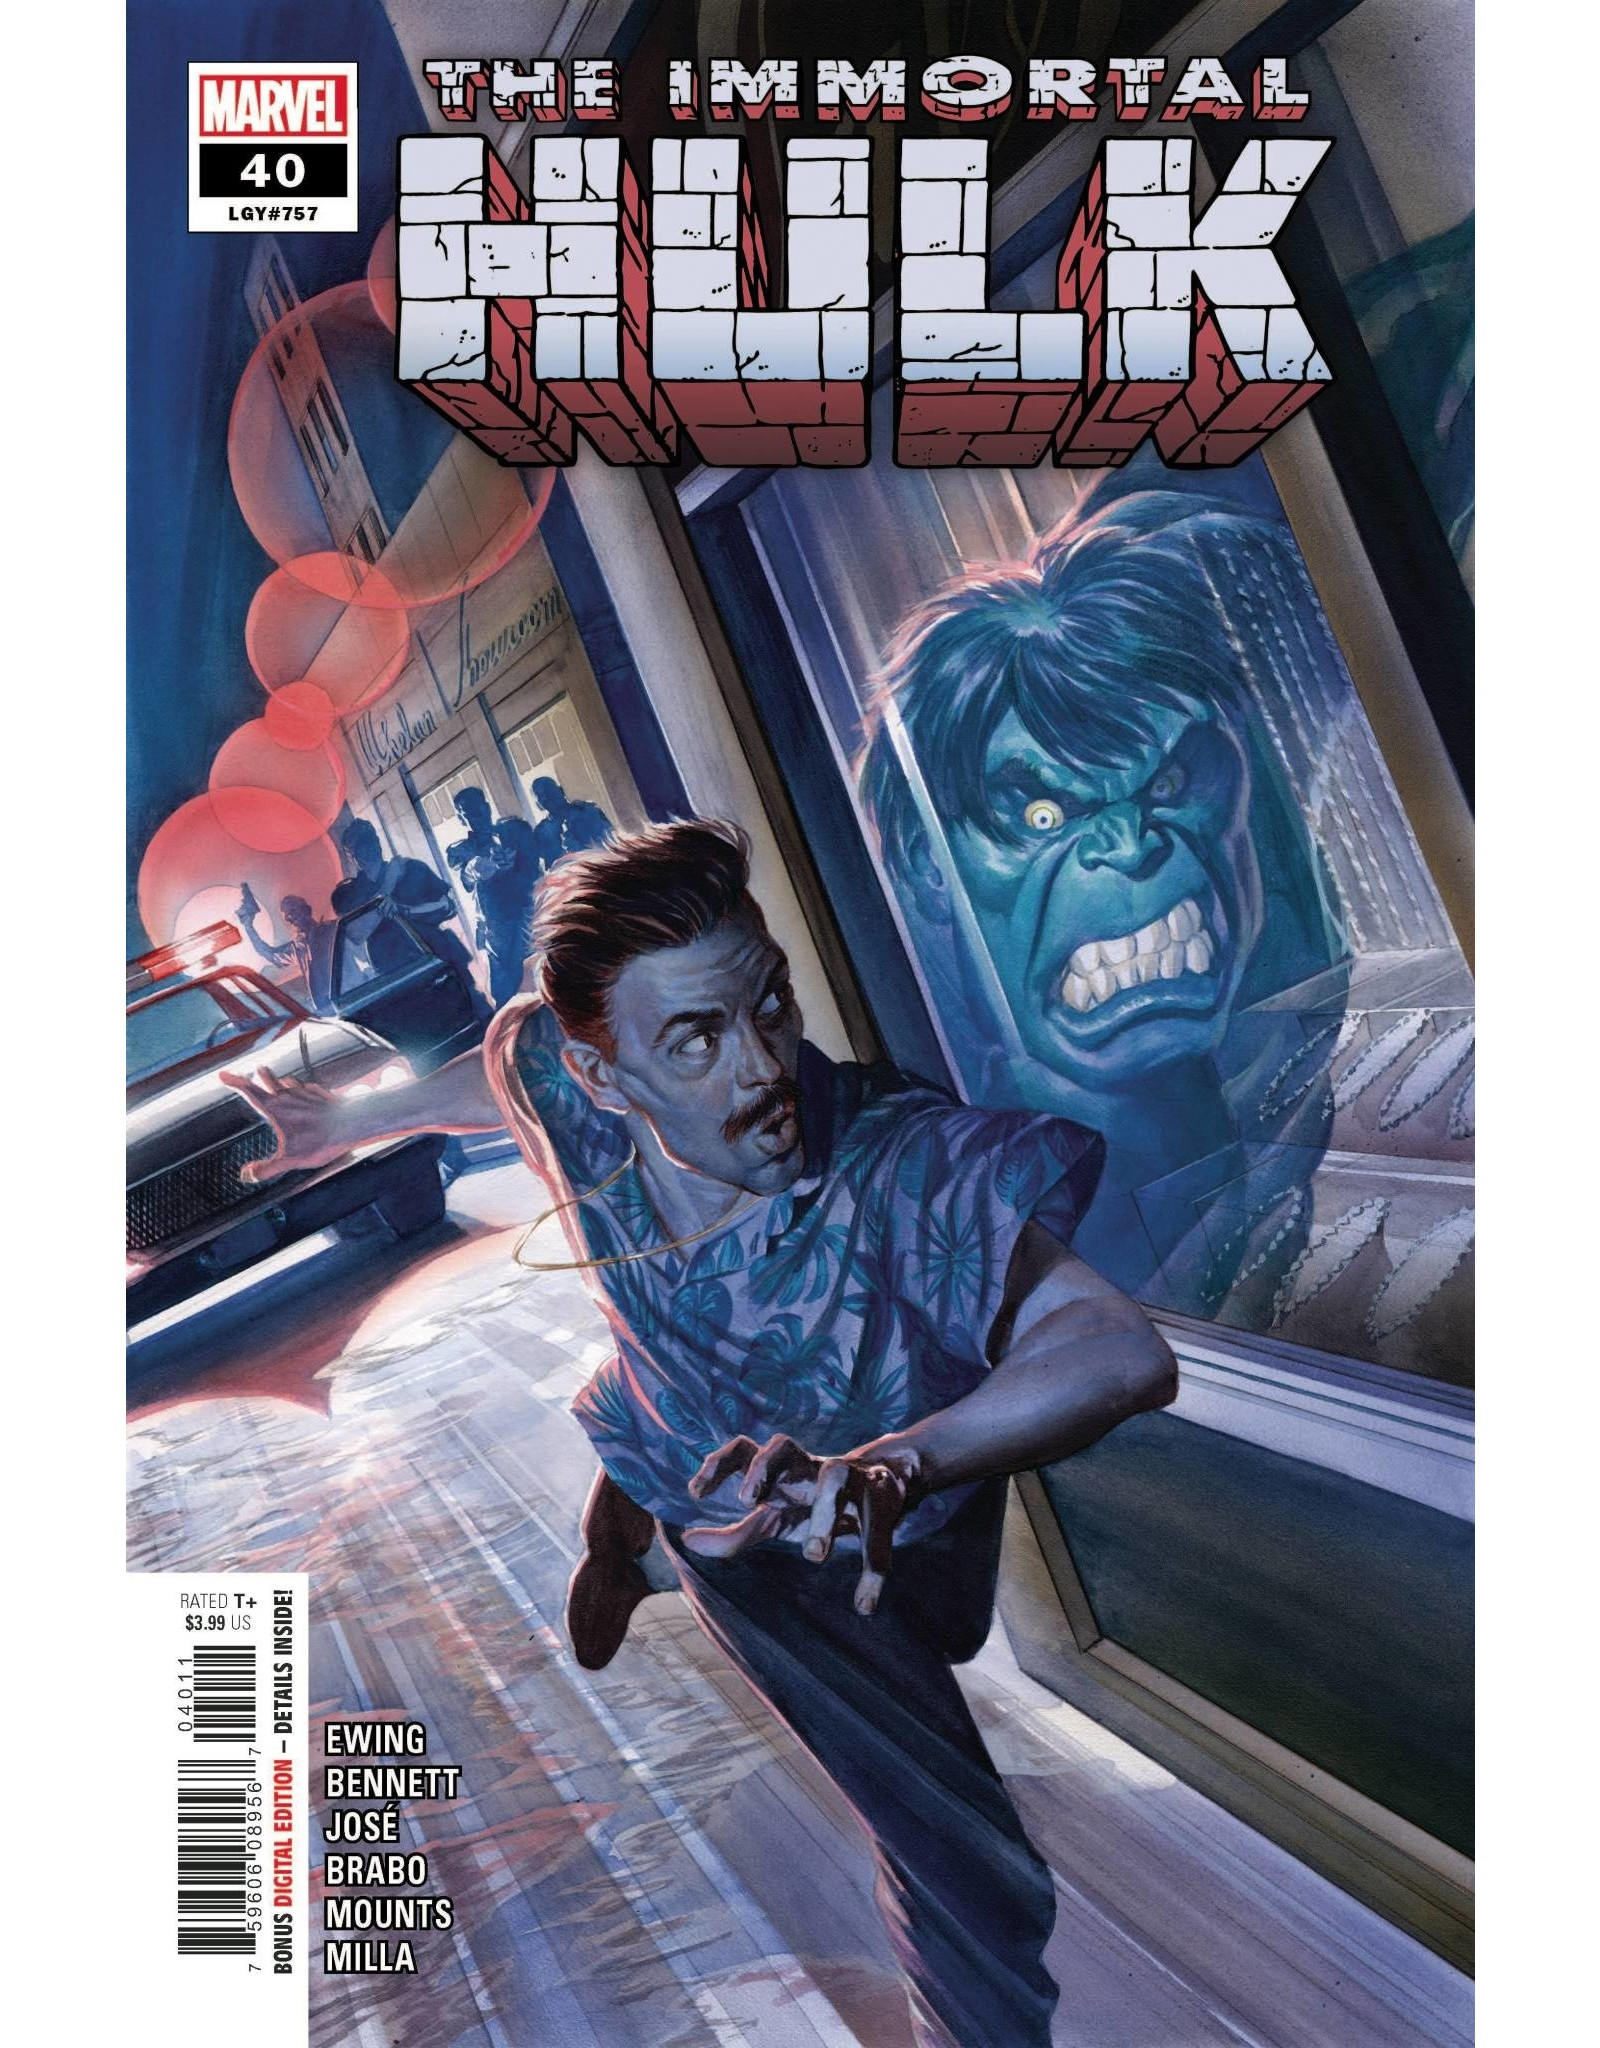 Marvel Comics IMMORTAL HULK #40